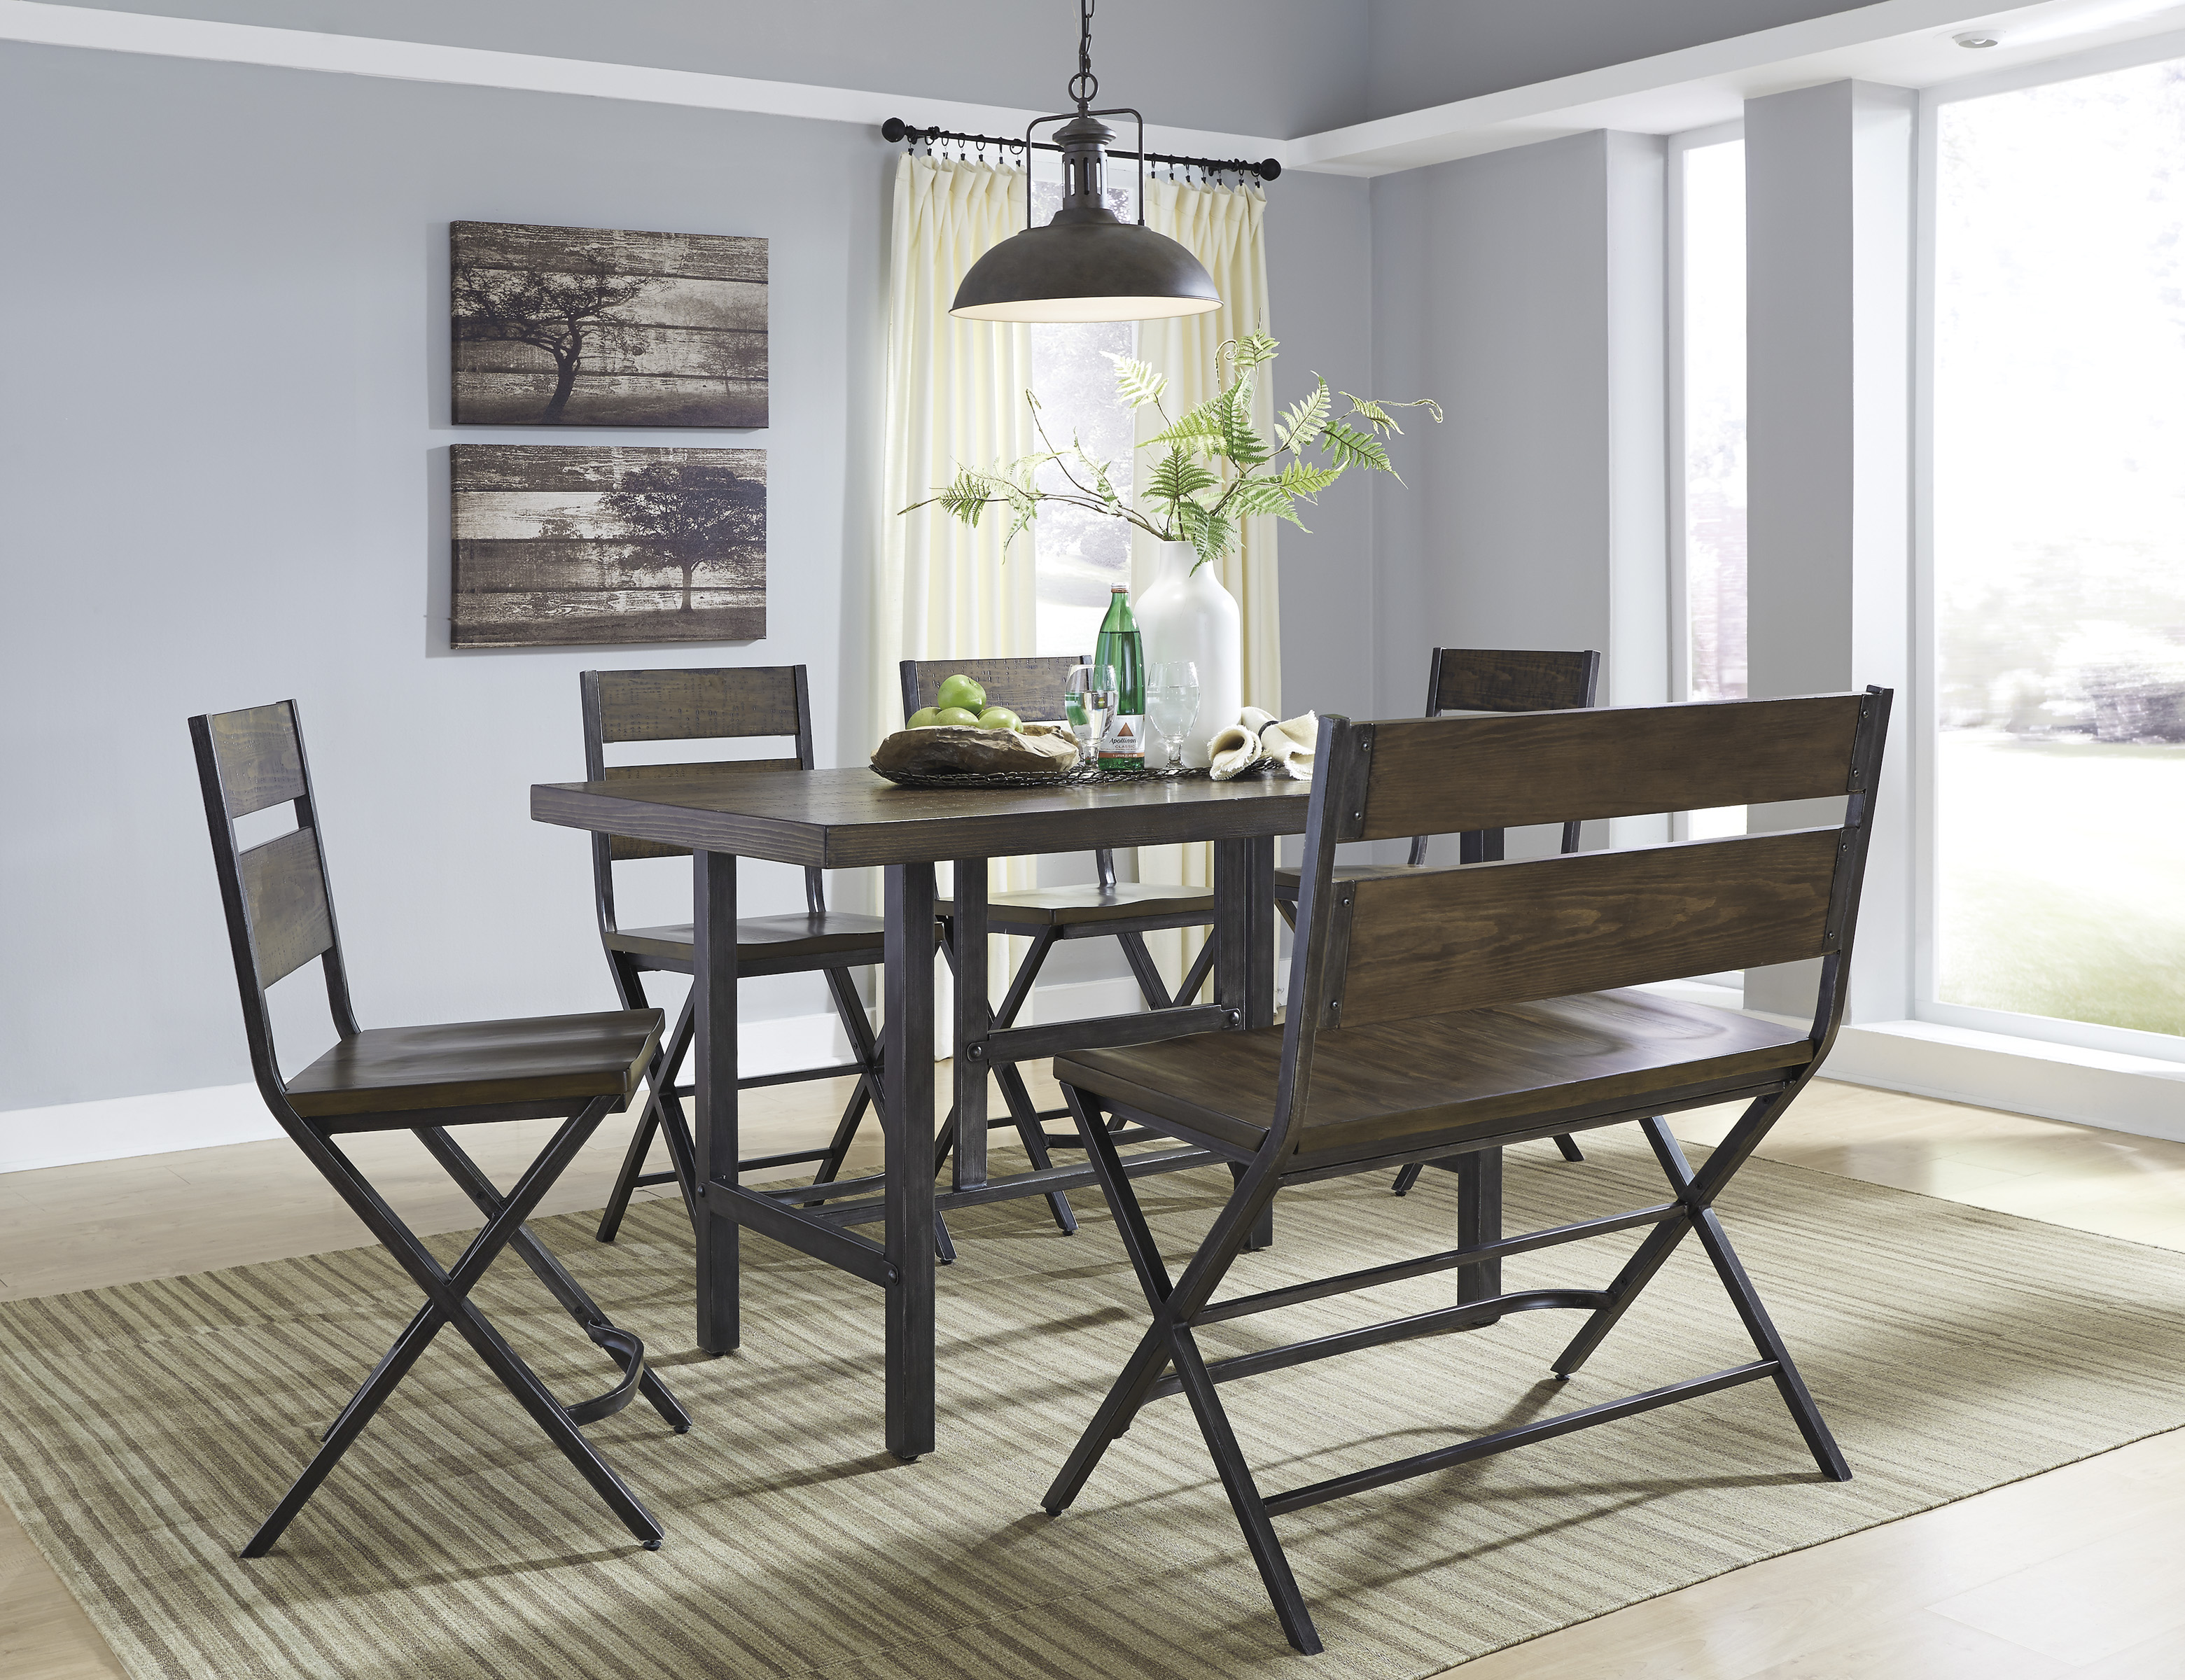 Kavara Dining Room Counter Table, Four Barstools and Double Barstool  / $23.99 A Week